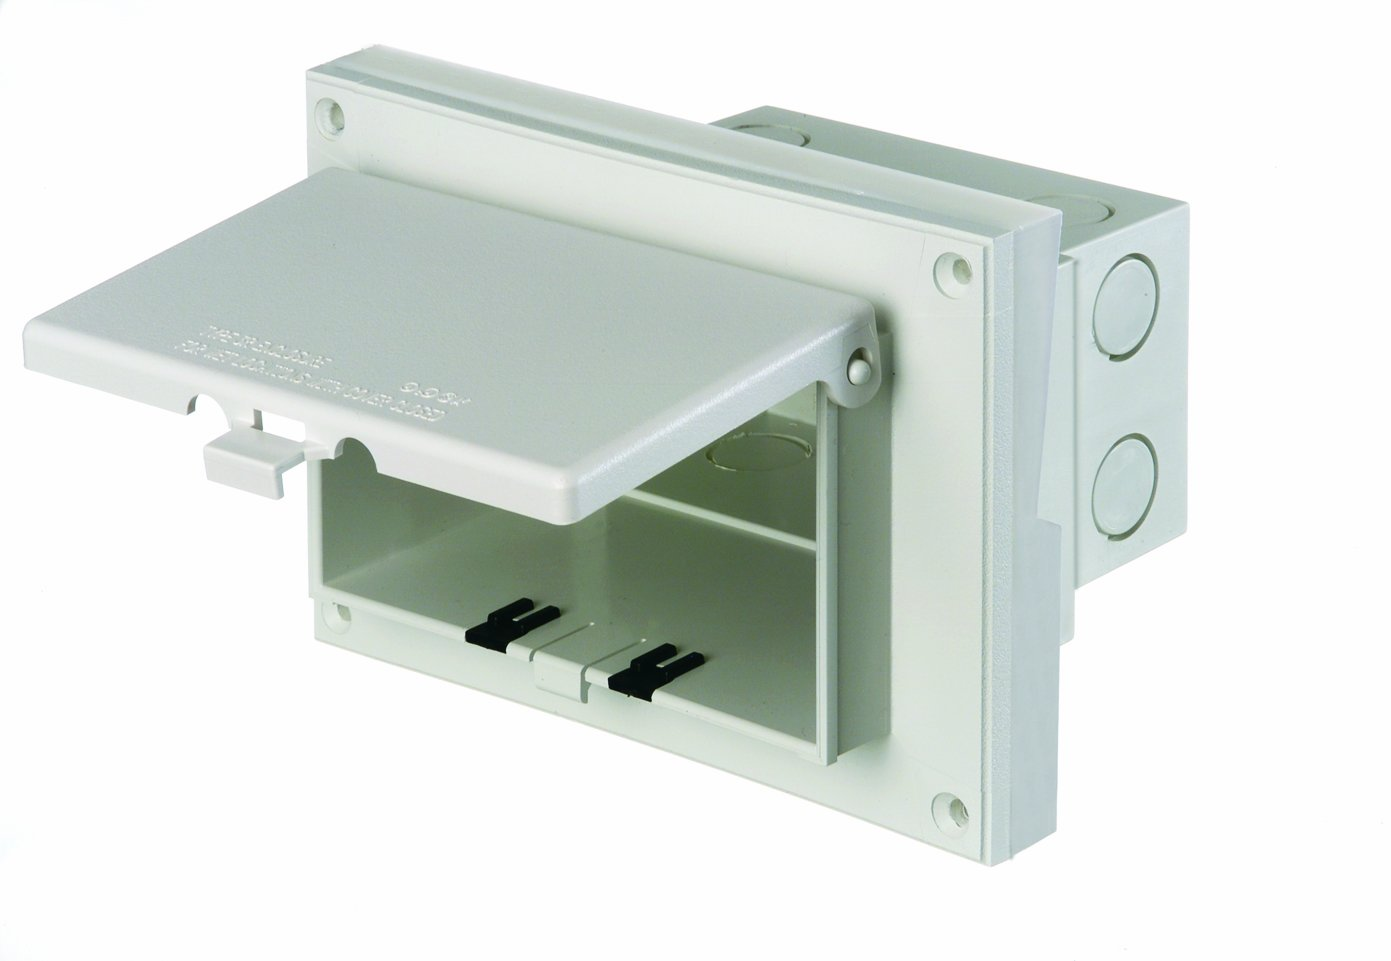 Arlington DBHR151W-1 Low Profile IN BOX Electrical Box with Weatherproof Cover for Retrofit Siding Construction, 5/8-Inch Lap, Horizontal, White by Arlington Industries